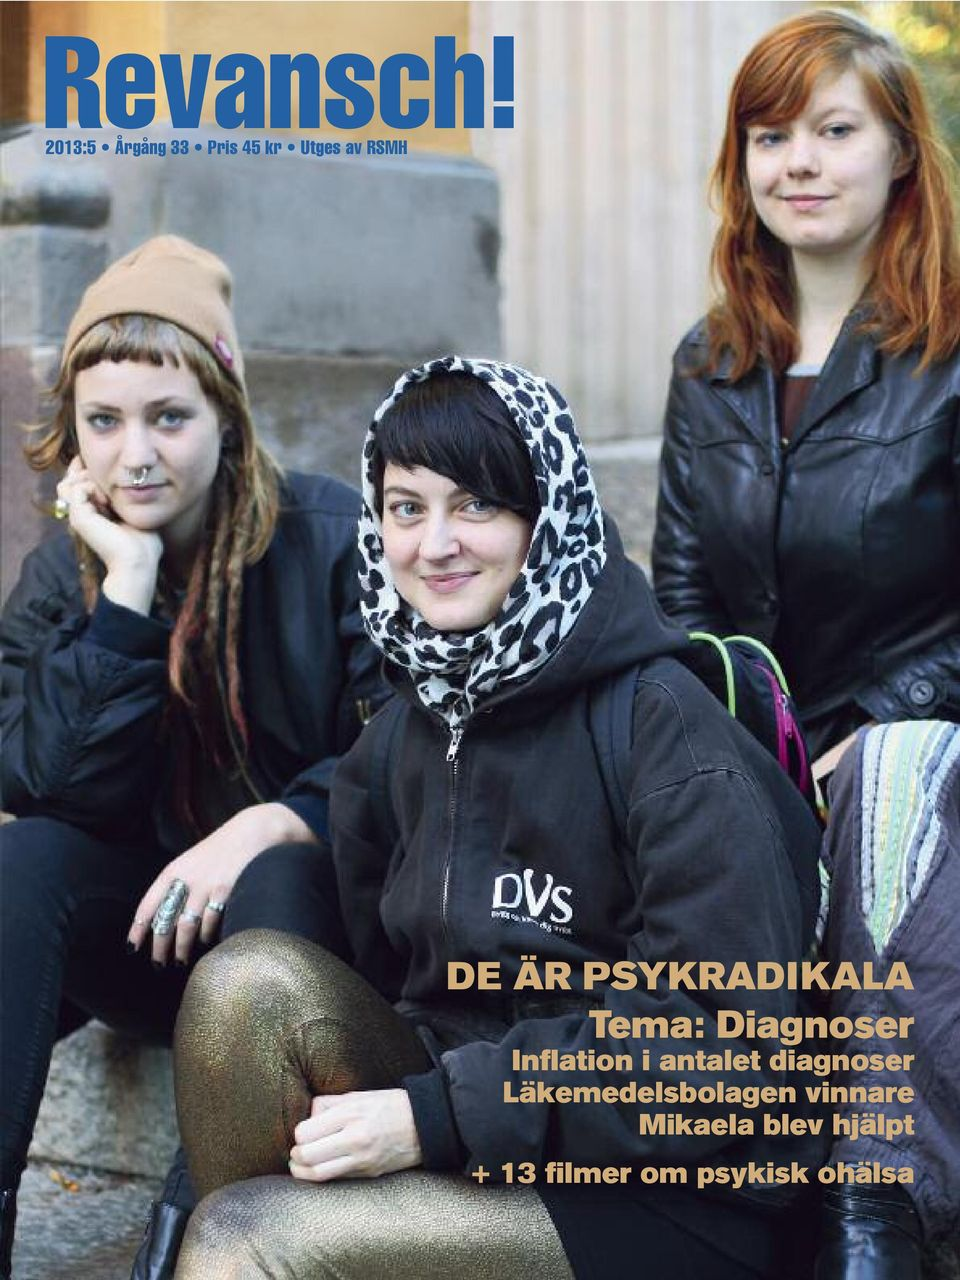 PSYKRADIKALA Tema: Diagnoser Inflation i